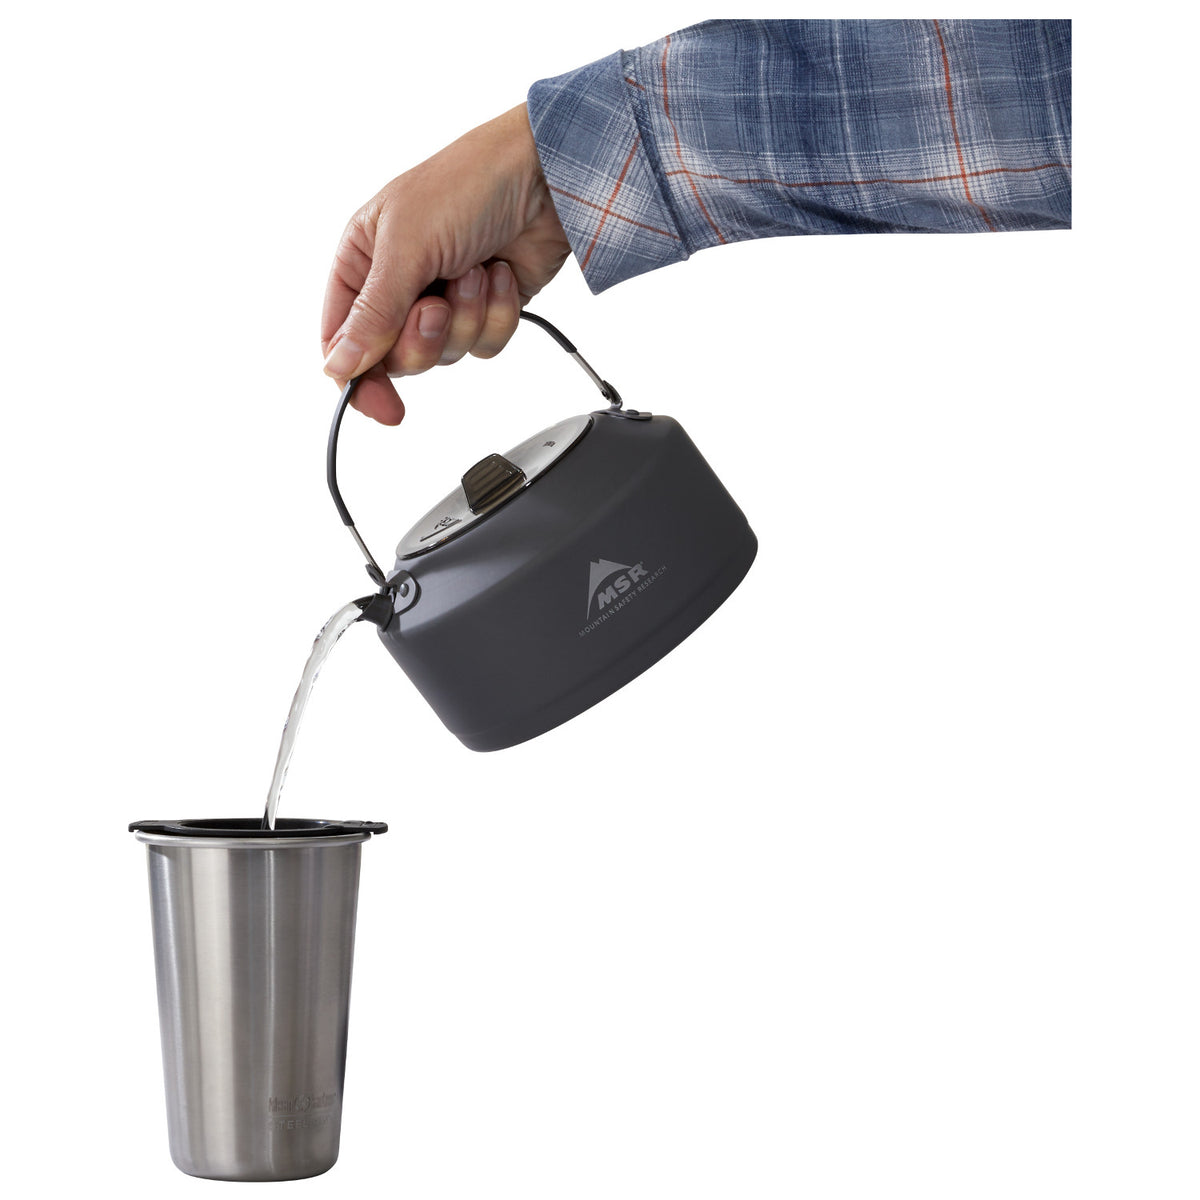 MSR Pika 1.0L Teapot shown in use pouring water into cup